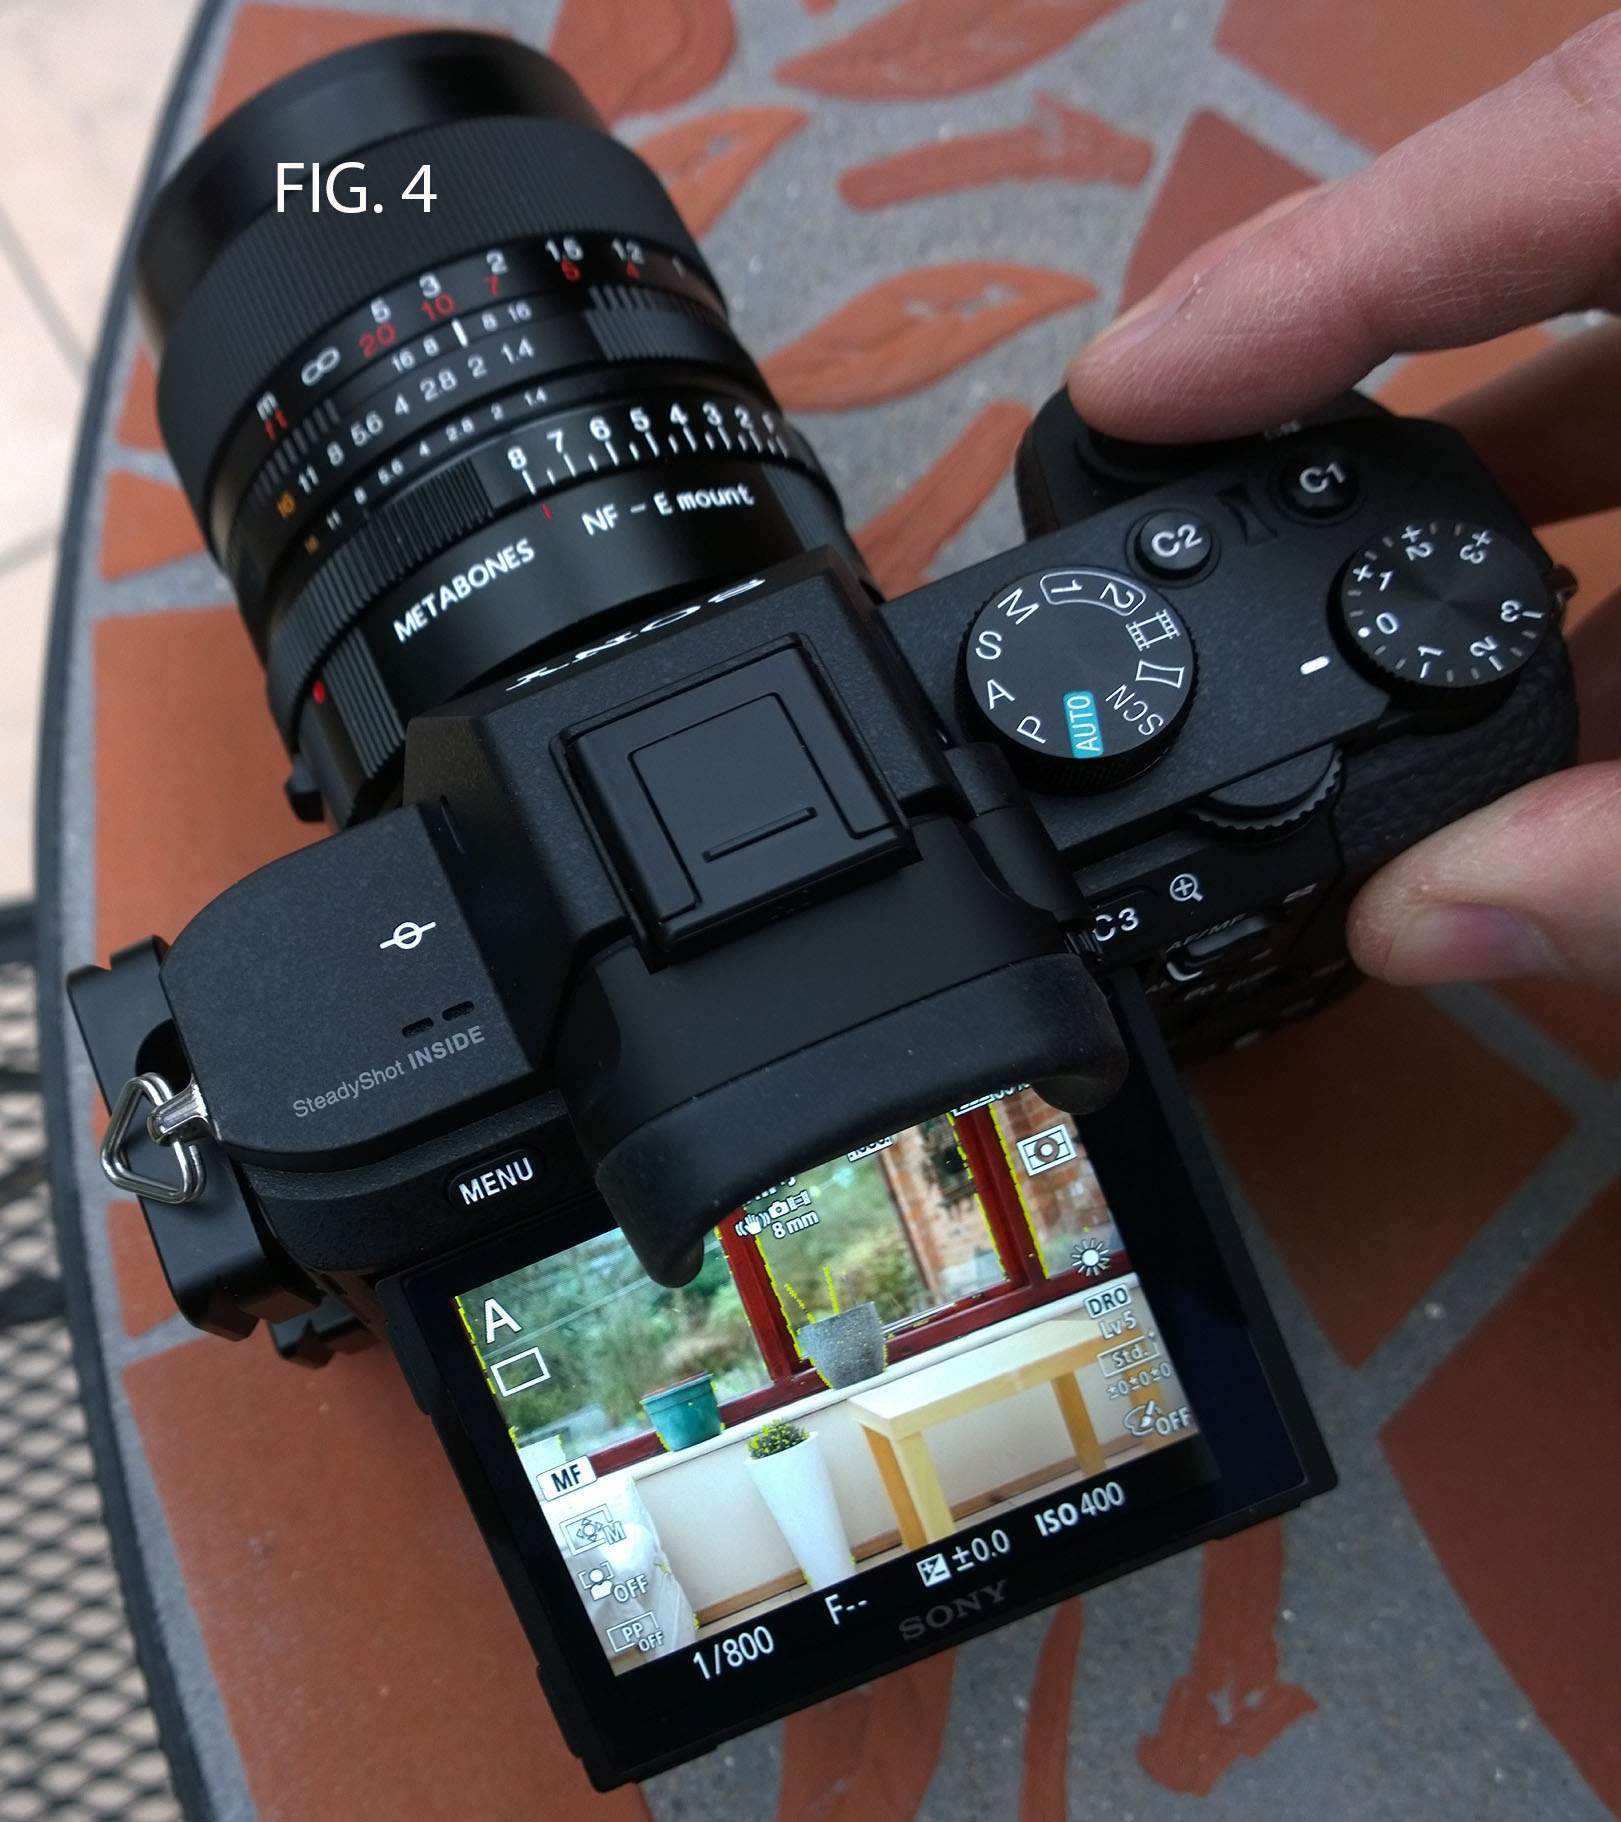 FIG. 4 - Just lightly touching the shutter button returns the screen / EVF to full size and I take the picture.